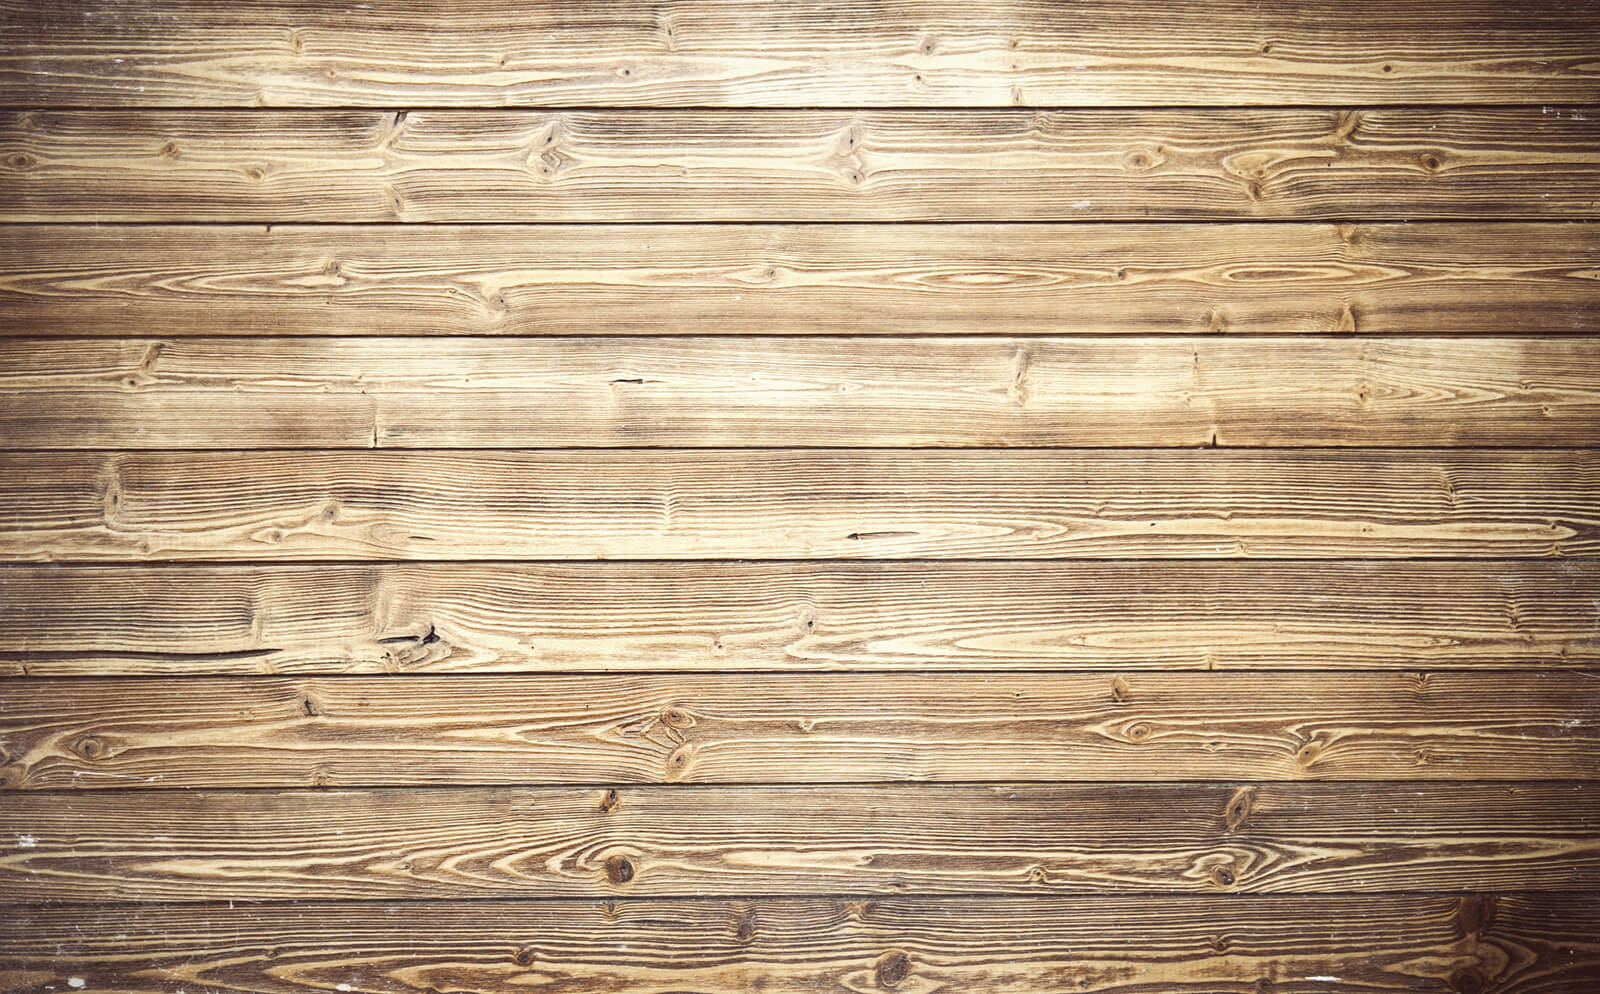 Rustic horizontal wood paneling background